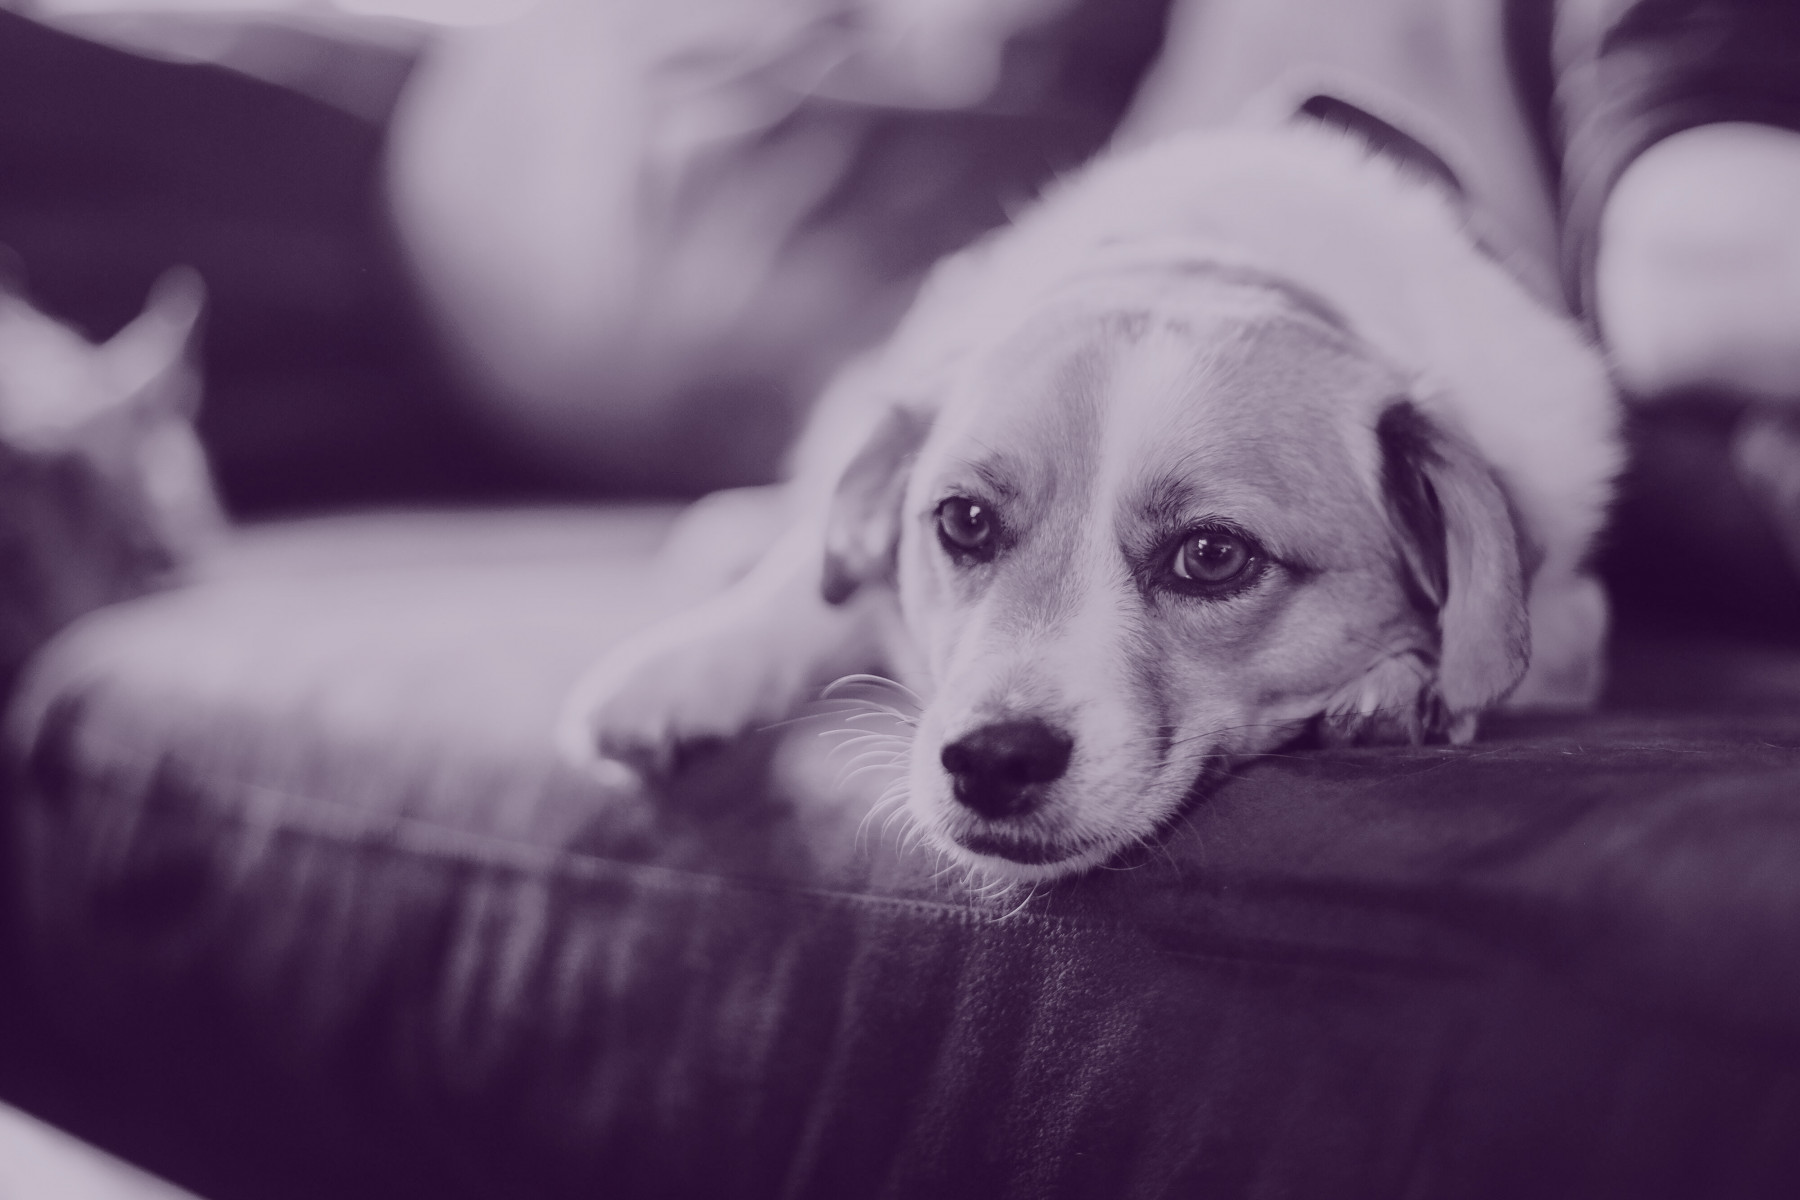 Pet peeves: should landlords have a 'no pets' rule?